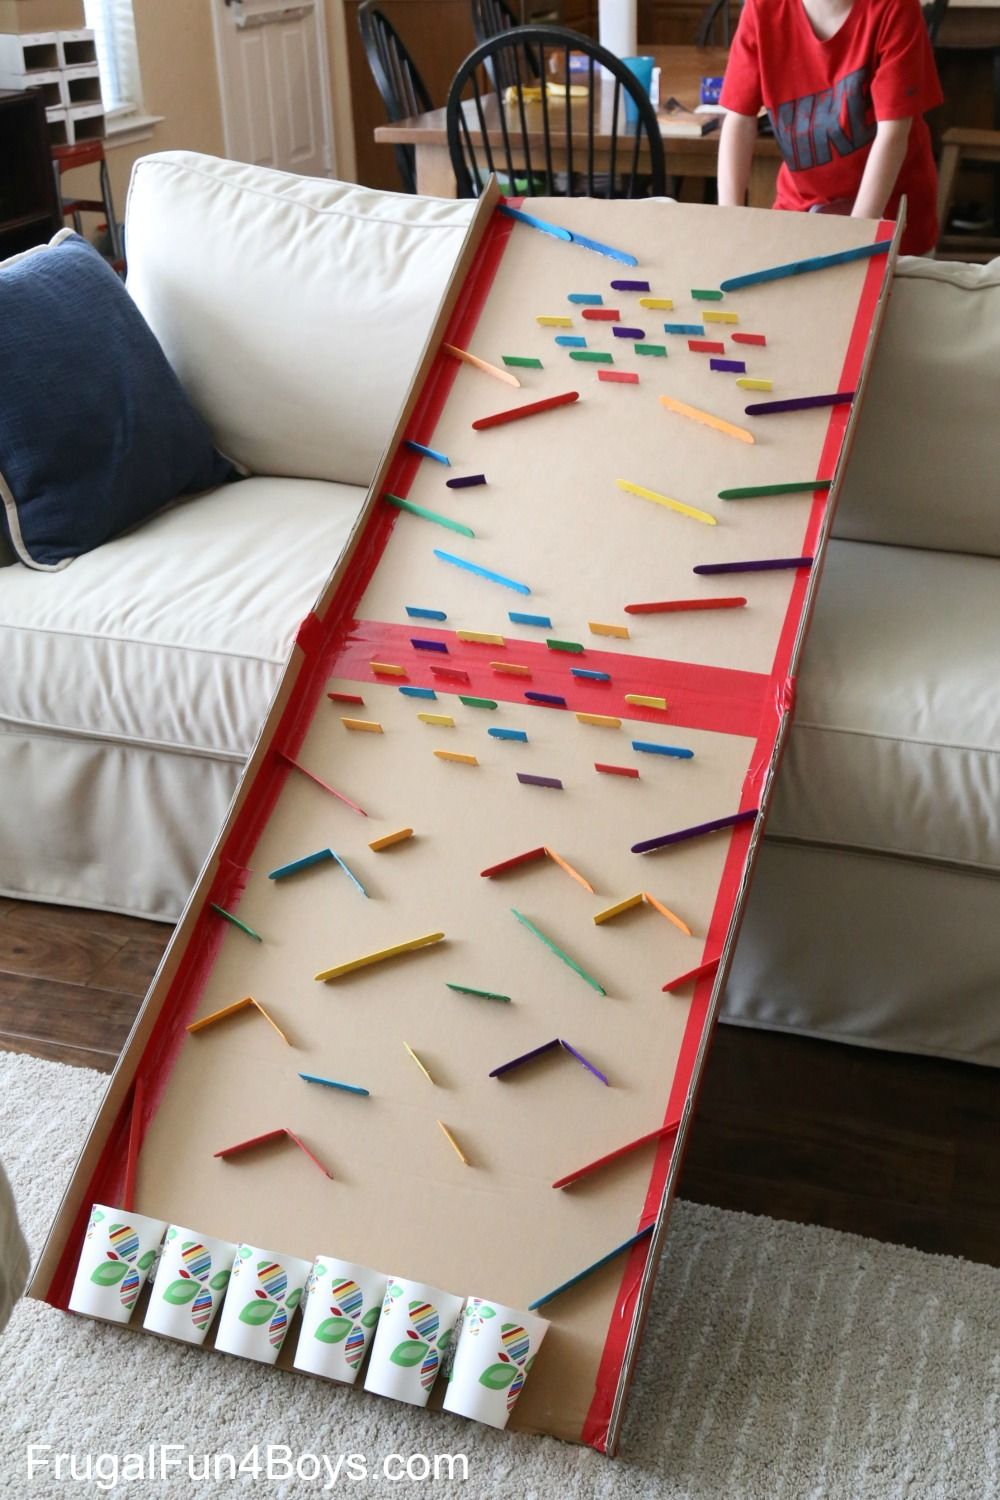 Photo of Turn a Cardboard Box into an Epic Marble Run – Frugal Fun For Boys and Girls